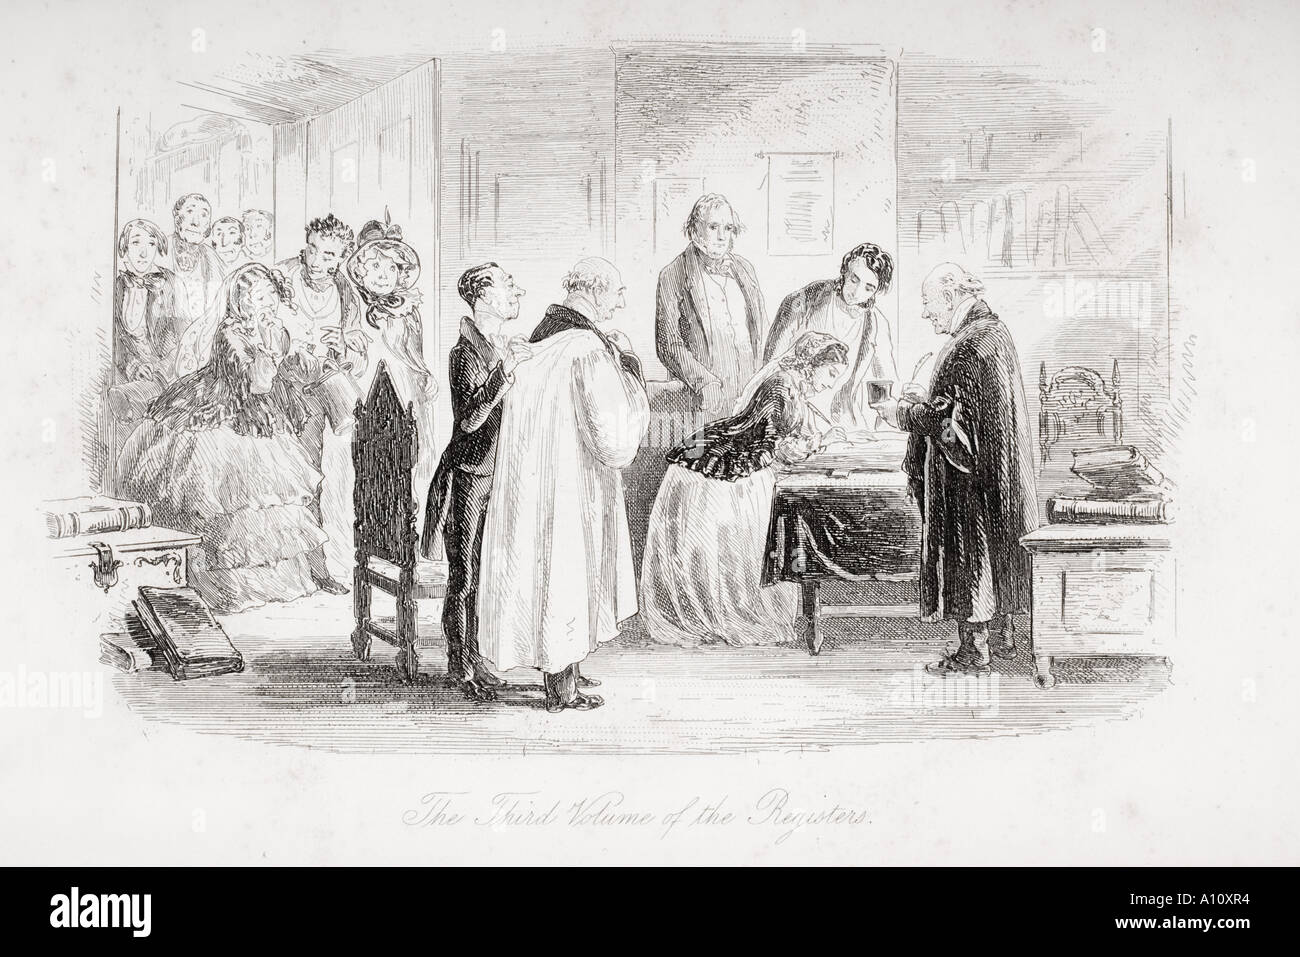 The Third Volume of the Registers Illustration from the Charles Dickens novel Little Dorrit by H K Browne known as Phiz - Stock Image